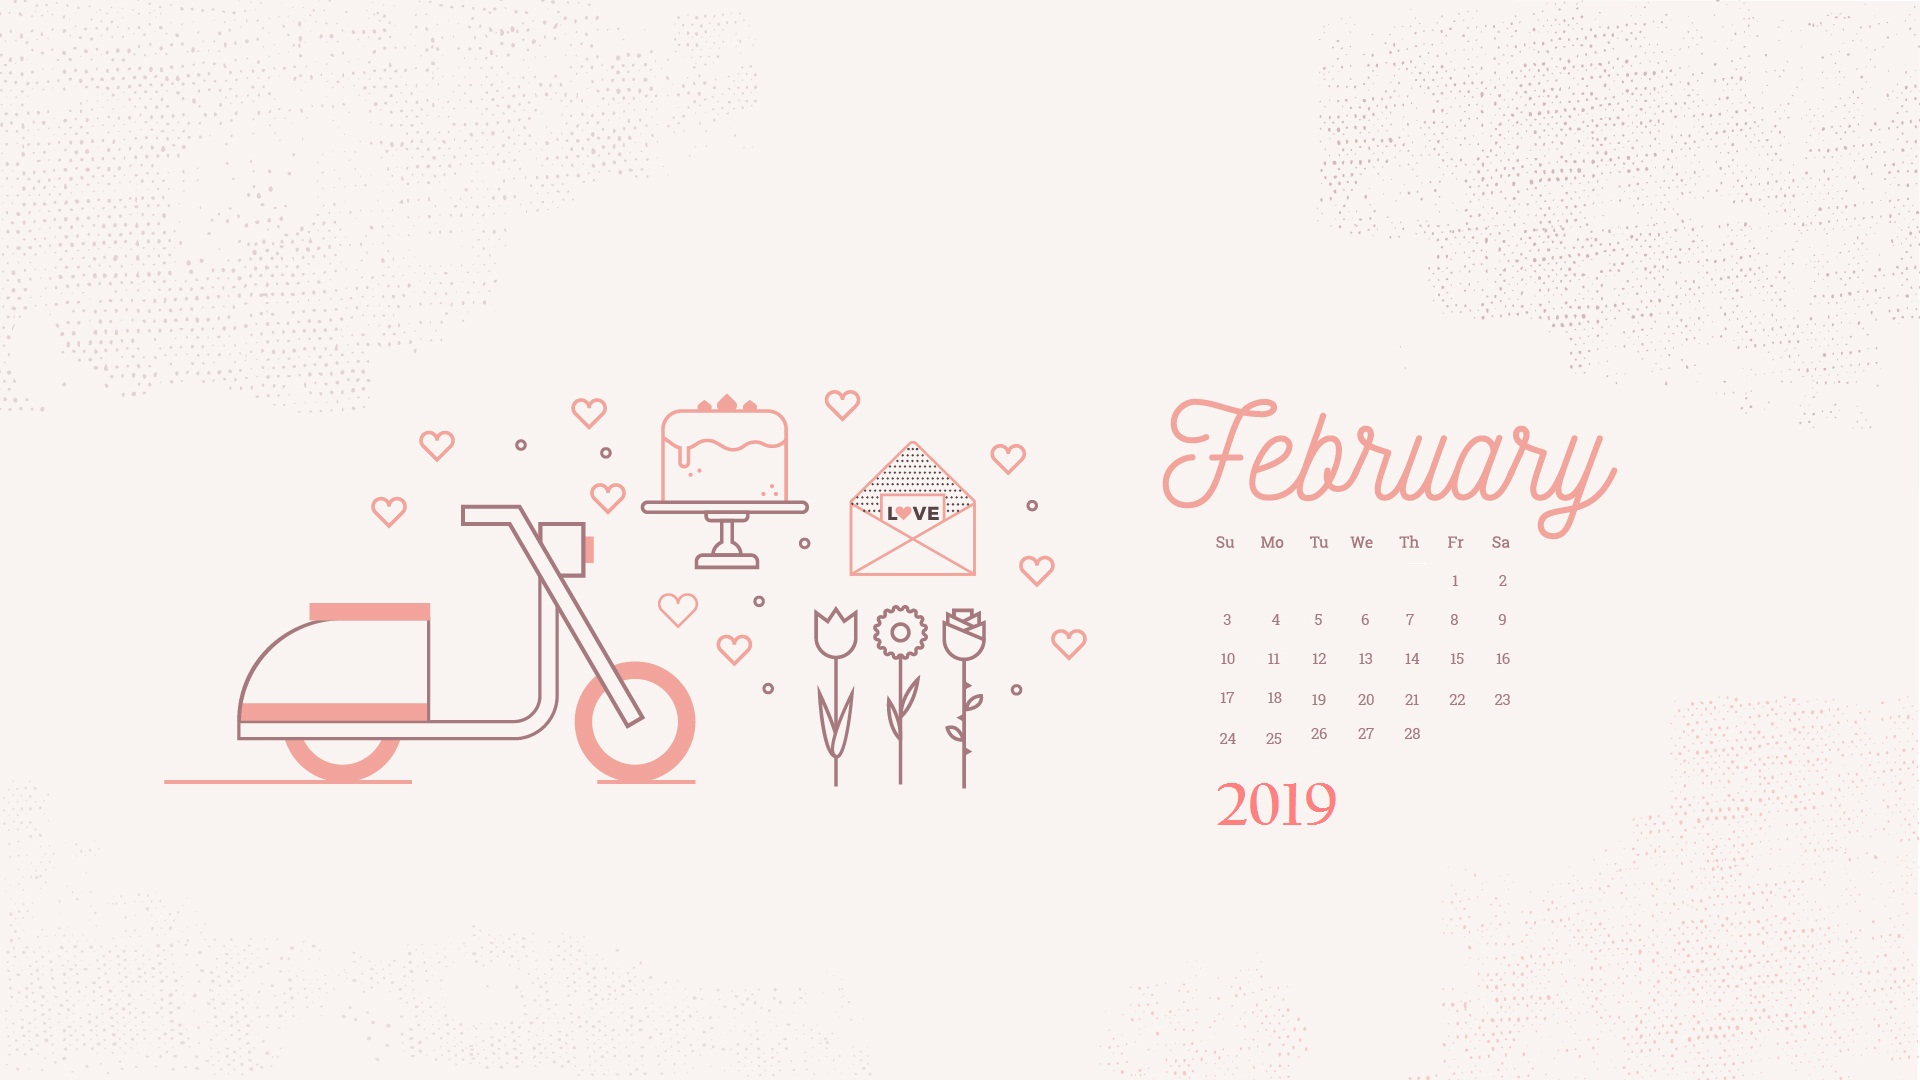 Cute February 2019 Desktop Calendar